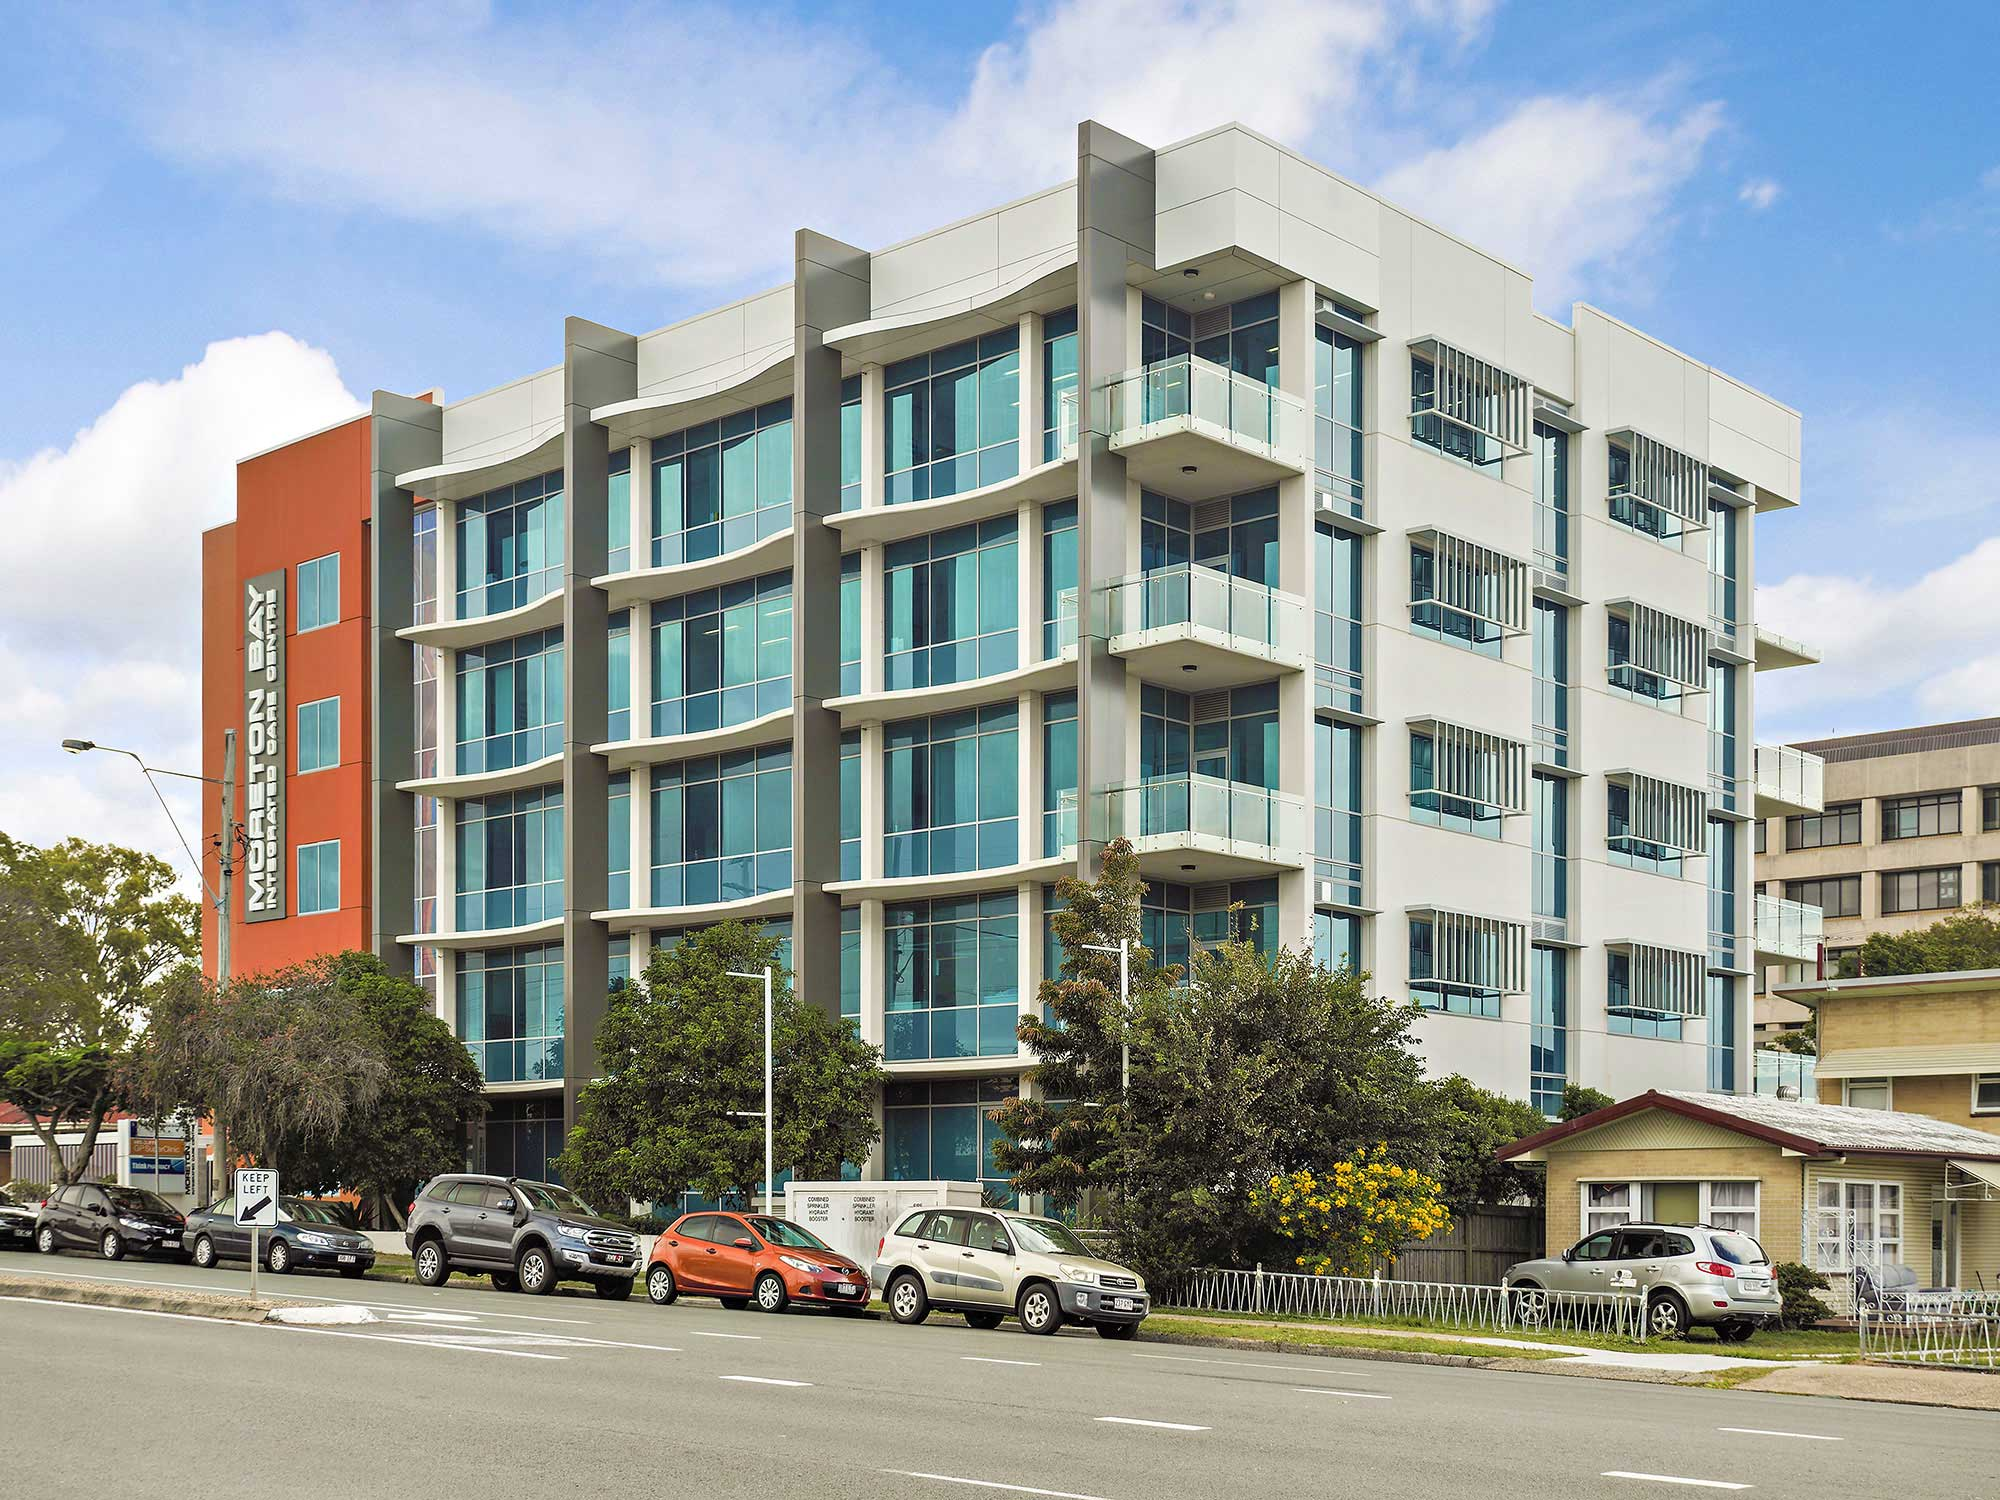 Commercial property photography at Anzac Avenue Redcliffe